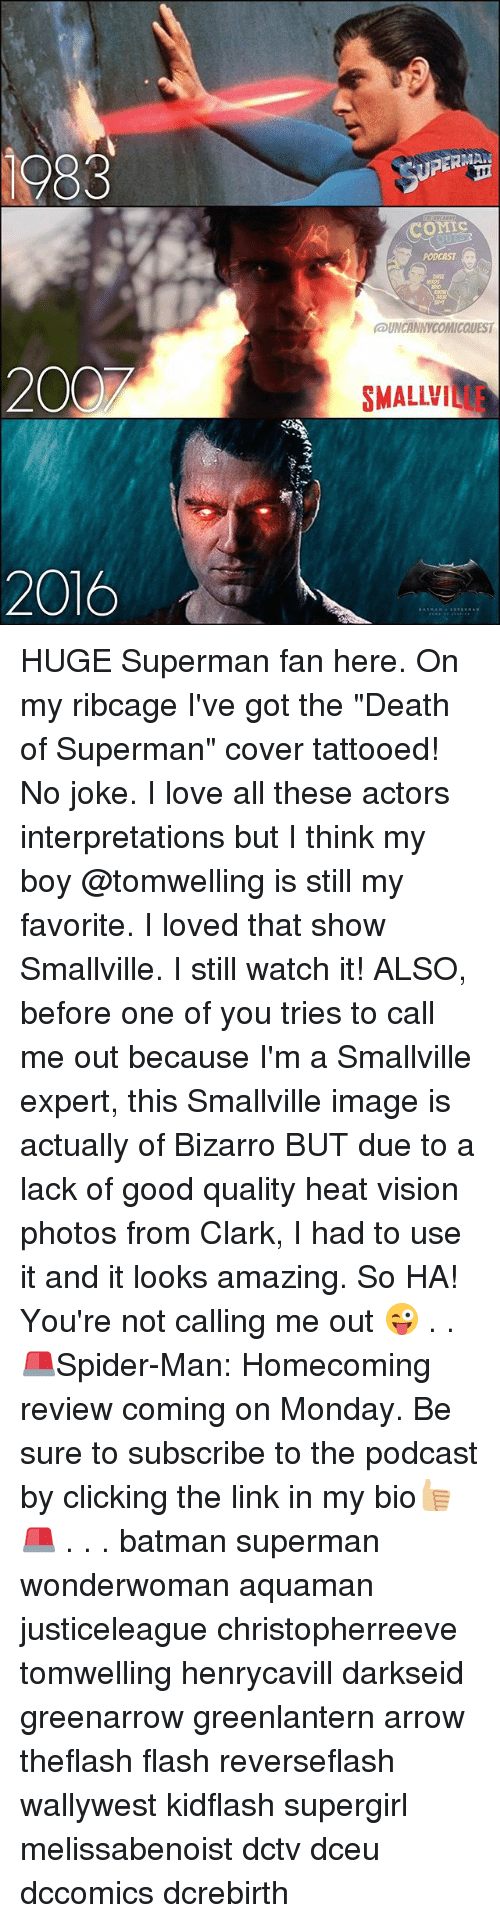 "Clarked: 1983  UPERM  COMC  PODCAST  021  UNCANNYCOMICQUEST  200  SMALLVILLE  2016 HUGE Superman fan here. On my ribcage I've got the ""Death of Superman"" cover tattooed! No joke. I love all these actors interpretations but I think my boy @tomwelling is still my favorite. I loved that show Smallville. I still watch it! ALSO, before one of you tries to call me out because I'm a Smallville expert, this Smallville image is actually of Bizarro BUT due to a lack of good quality heat vision photos from Clark, I had to use it and it looks amazing. So HA! You're not calling me out 😜 . . 🚨Spider-Man: Homecoming review coming on Monday. Be sure to subscribe to the podcast by clicking the link in my bio👍🏼🚨 . . . batman superman wonderwoman aquaman justiceleague christopherreeve tomwelling henrycavill darkseid greenarrow greenlantern arrow theflash flash reverseflash wallywest kidflash supergirl melissabenoist dctv dceu dccomics dcrebirth"